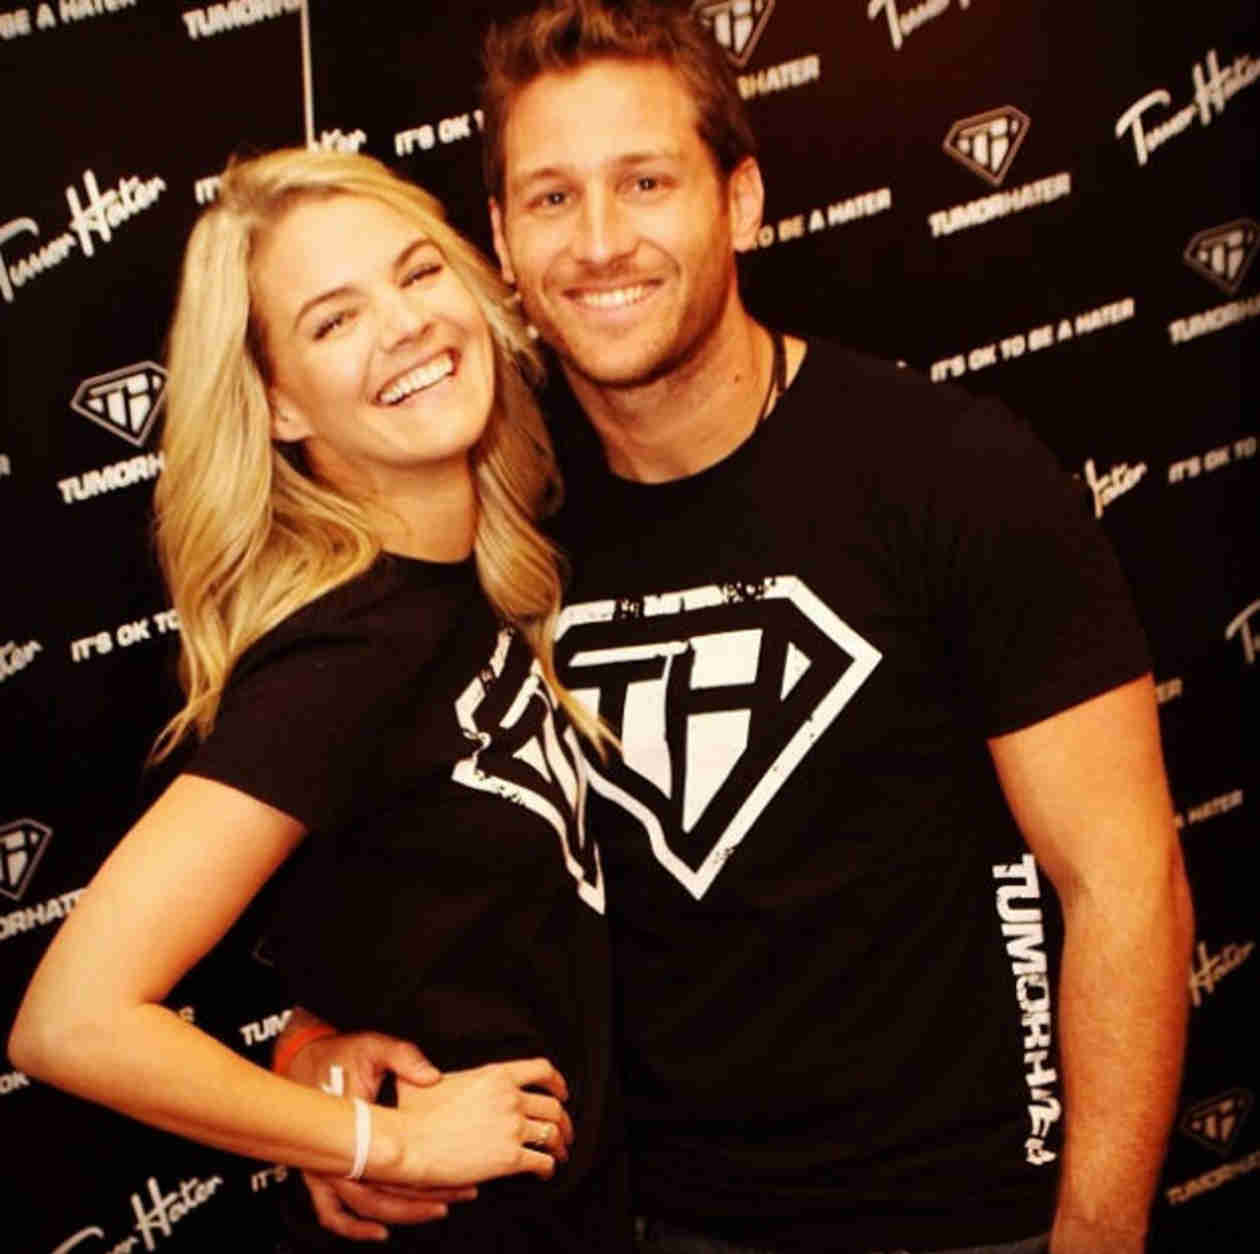 Juan Pablo Galavis Challenges Nikki Ferrell to Do WHAT?! (VIDEO)